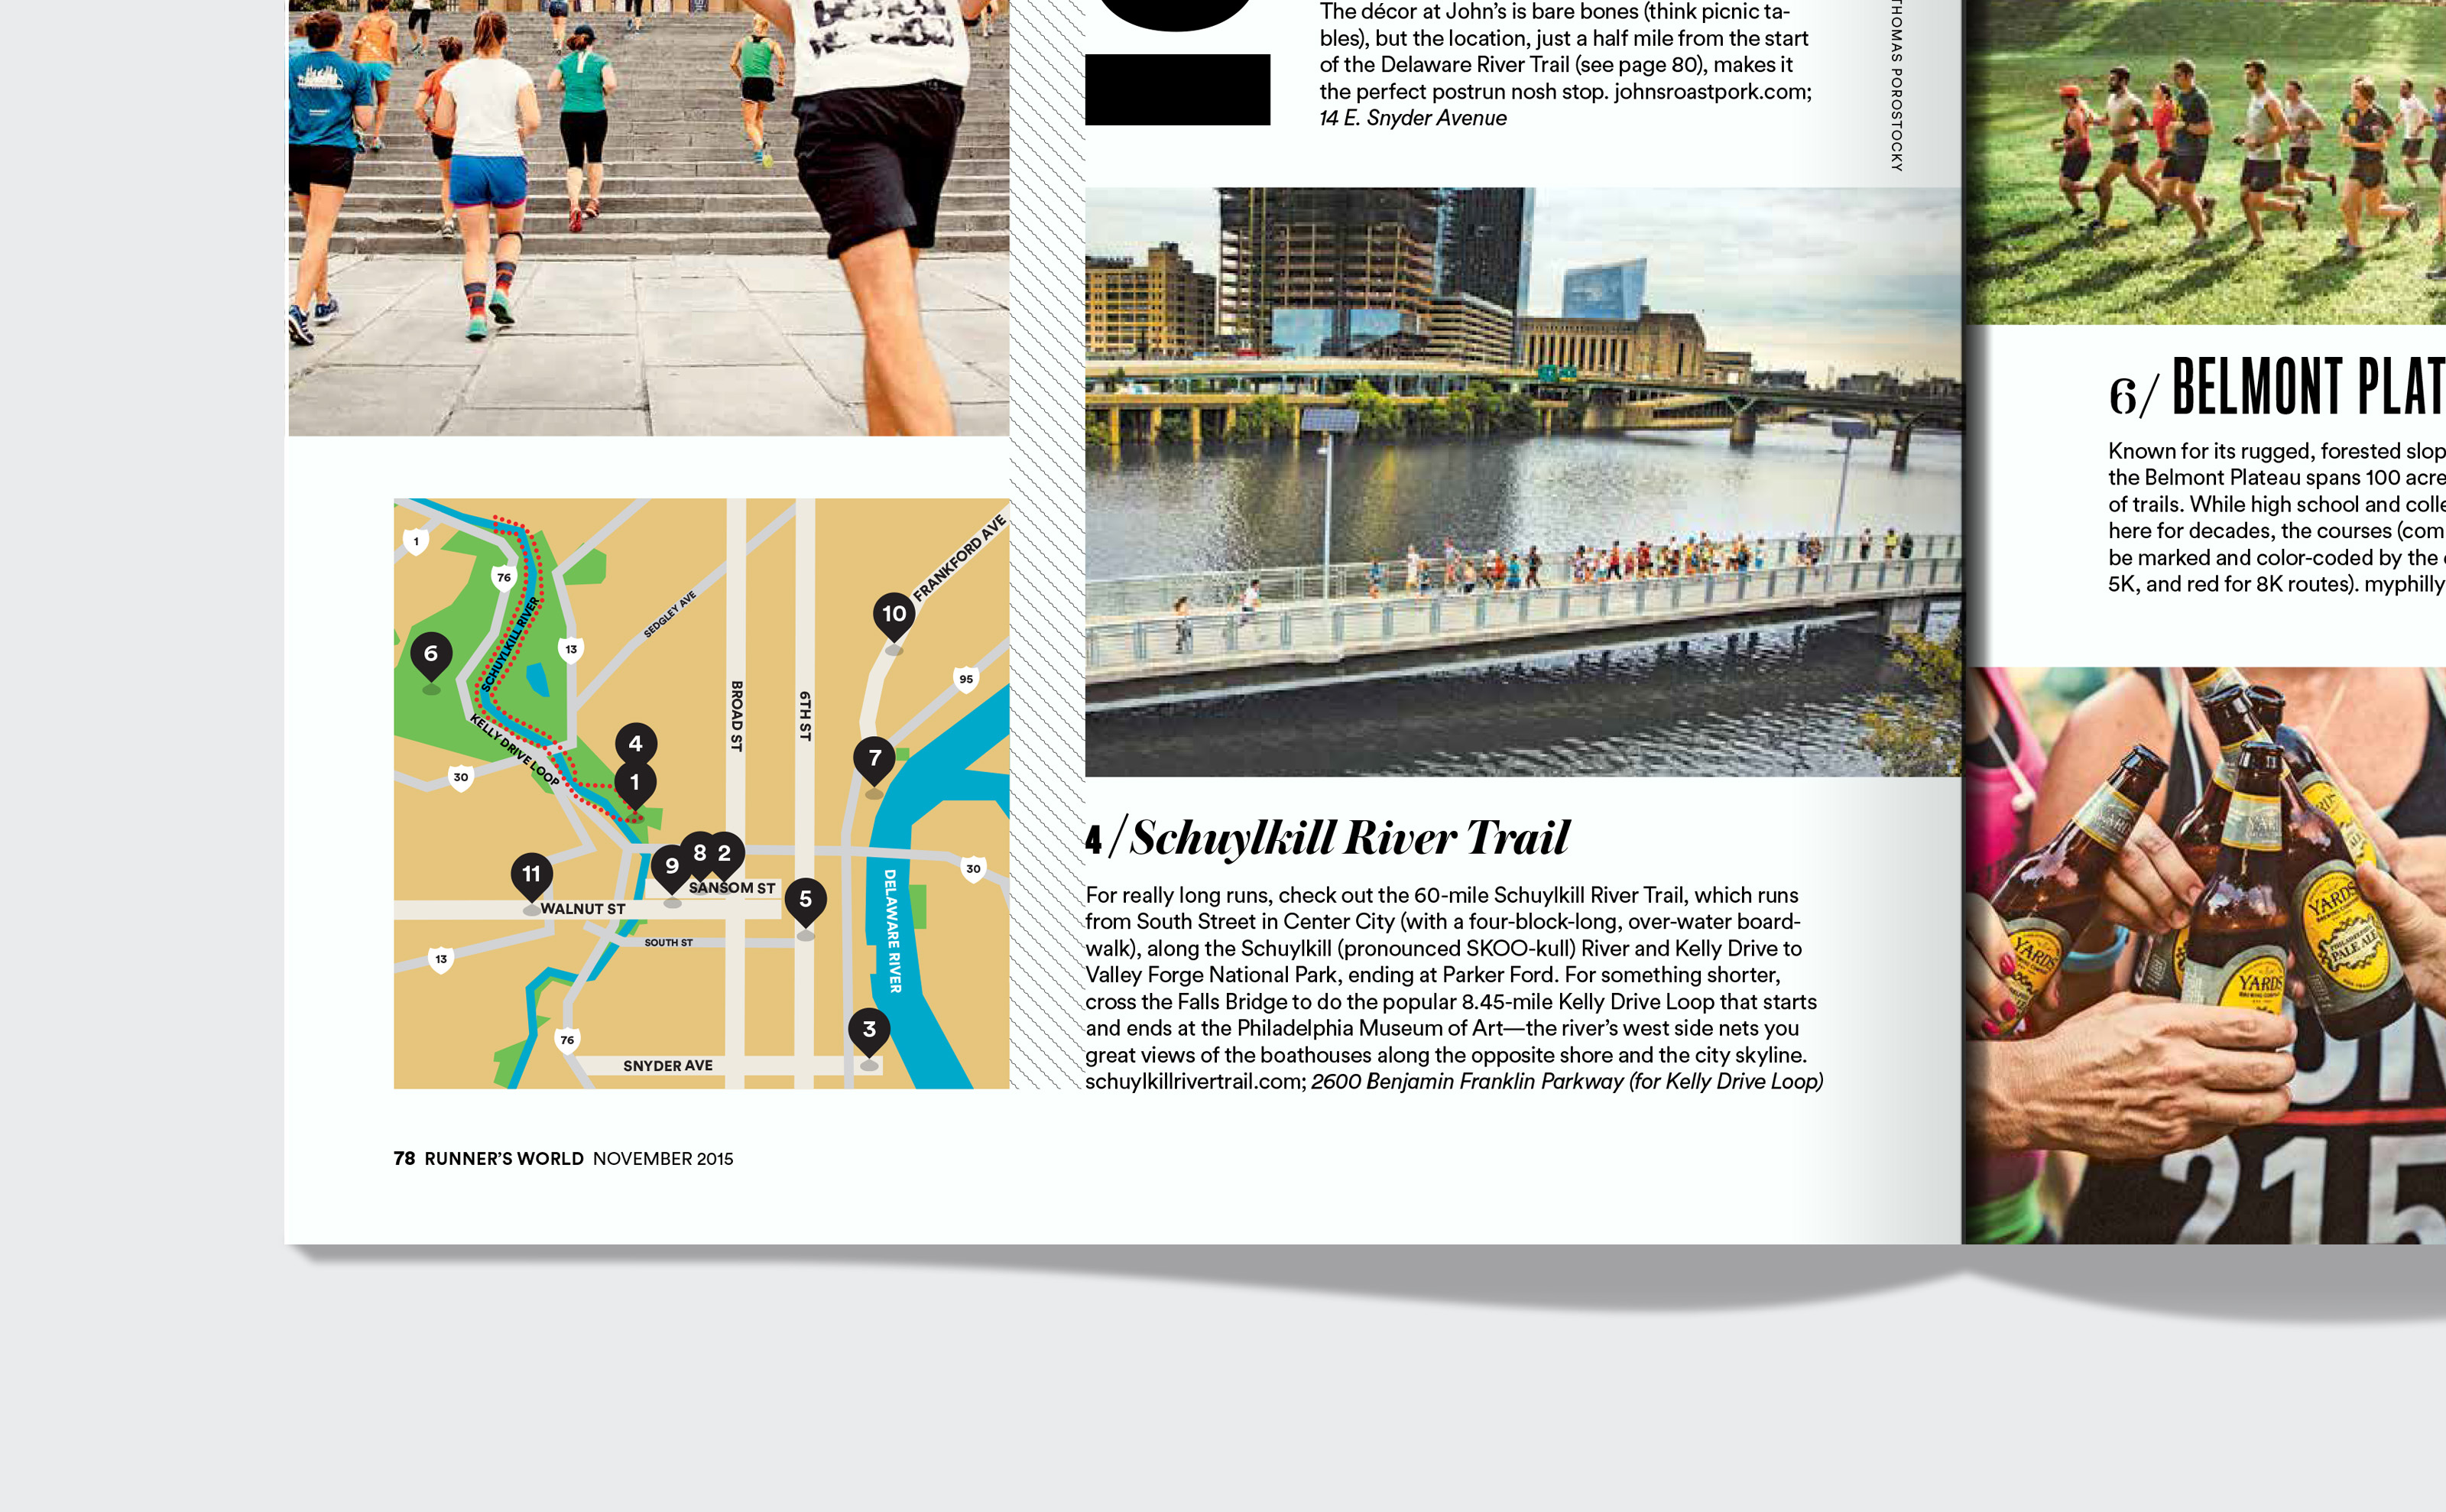 Runners World map of Philadelphia detail schuykill river tail